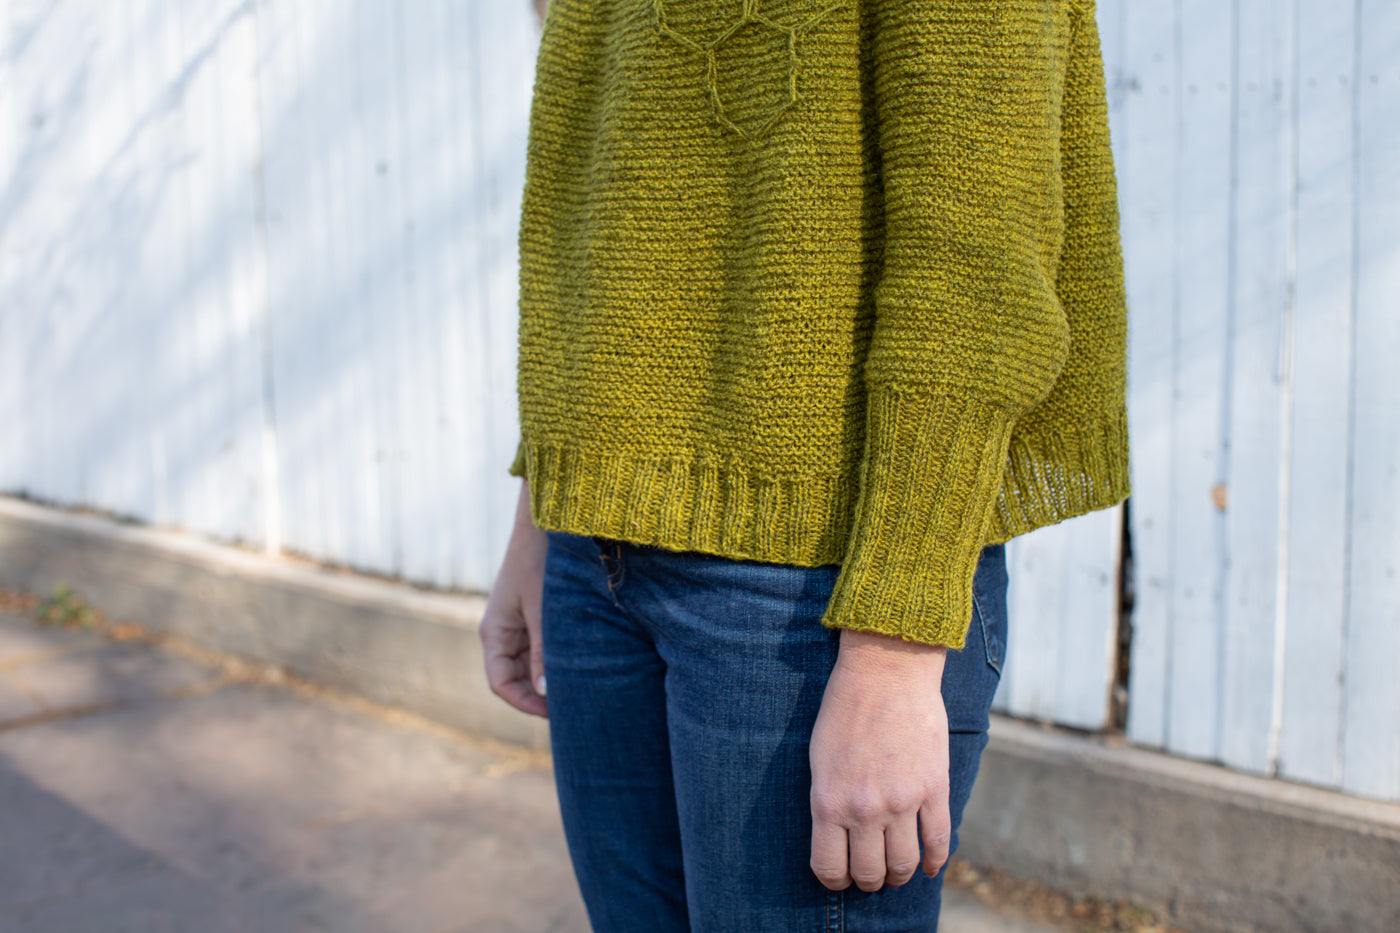 Closeup detail photograph showing the knitting on a yellow-green sweater on the sleeves and base.  The women is wearing white jeans and standing on a city sidewalk with a white fence behind her.